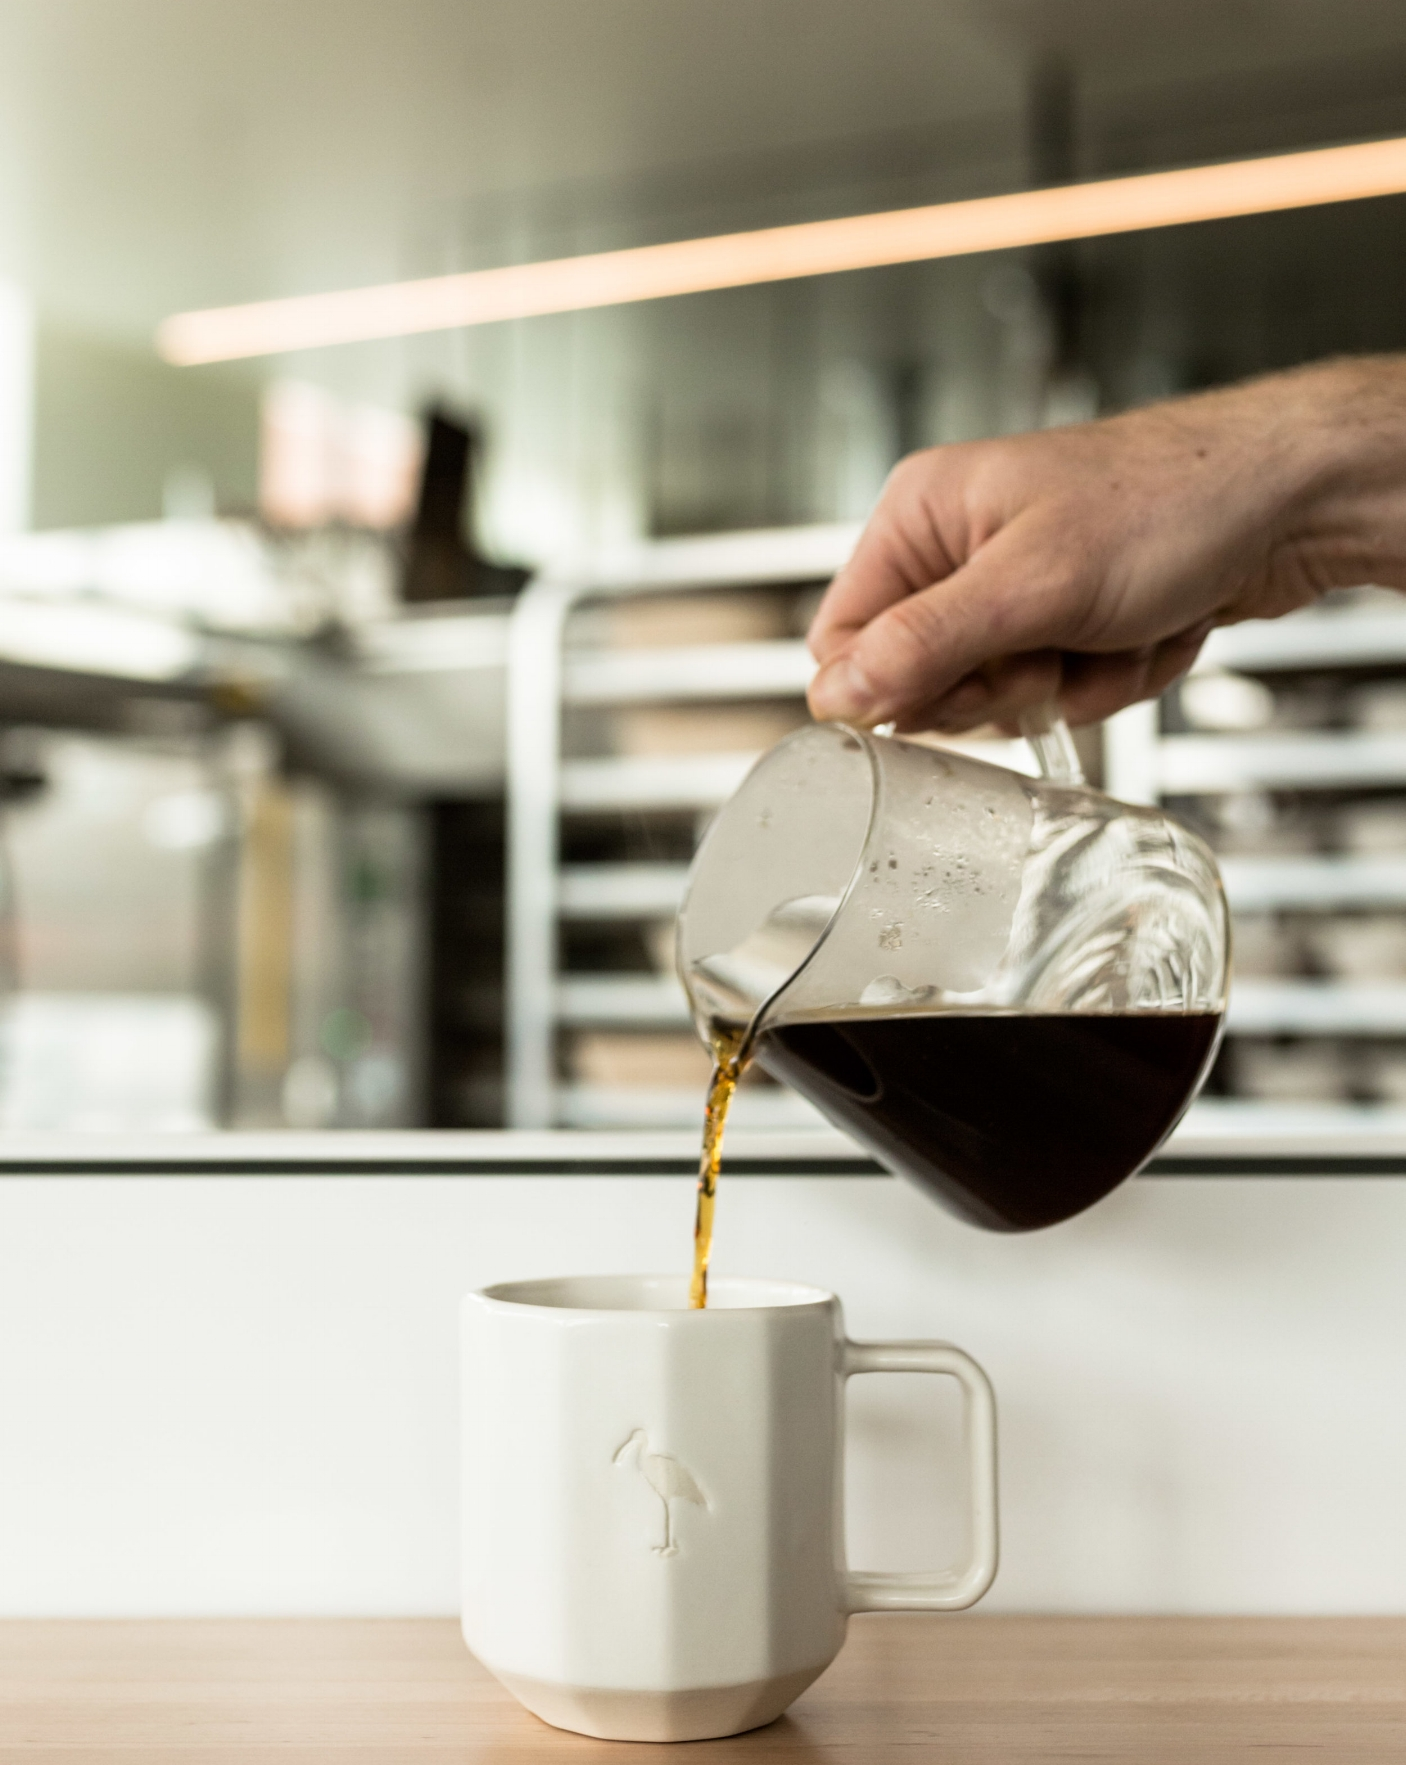 Coffee being poured story.jpg